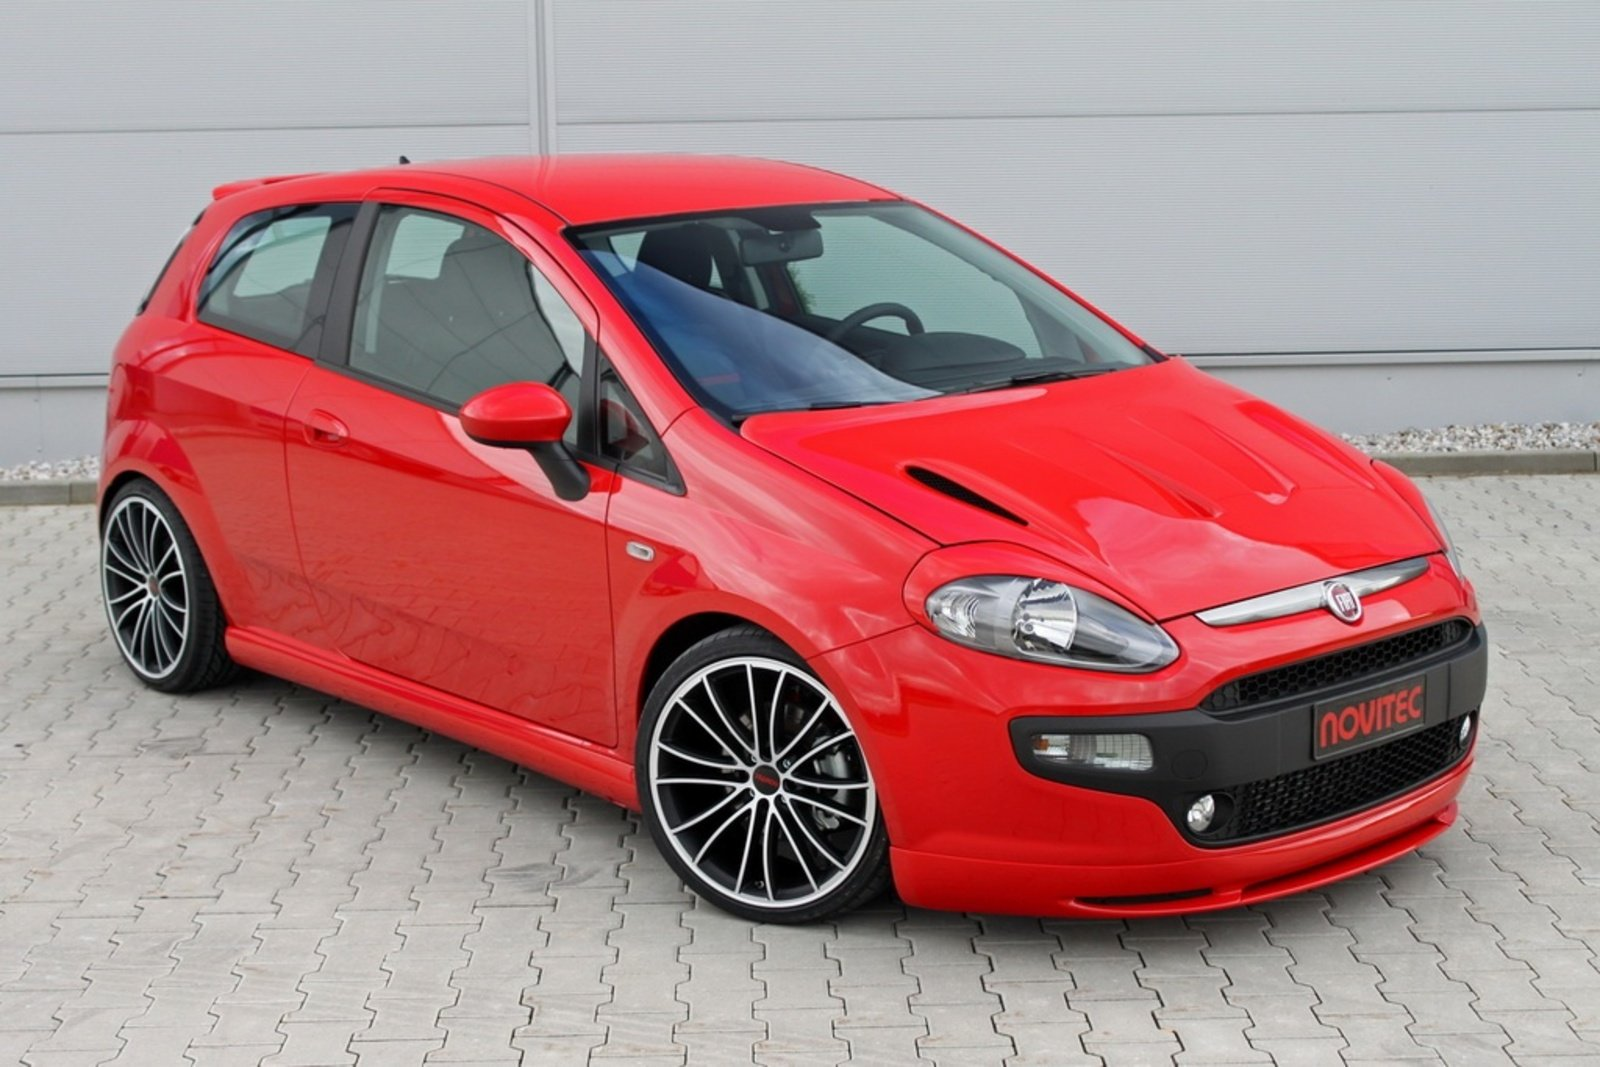 2010 fiat punto evo by novitec review top speed. Black Bedroom Furniture Sets. Home Design Ideas